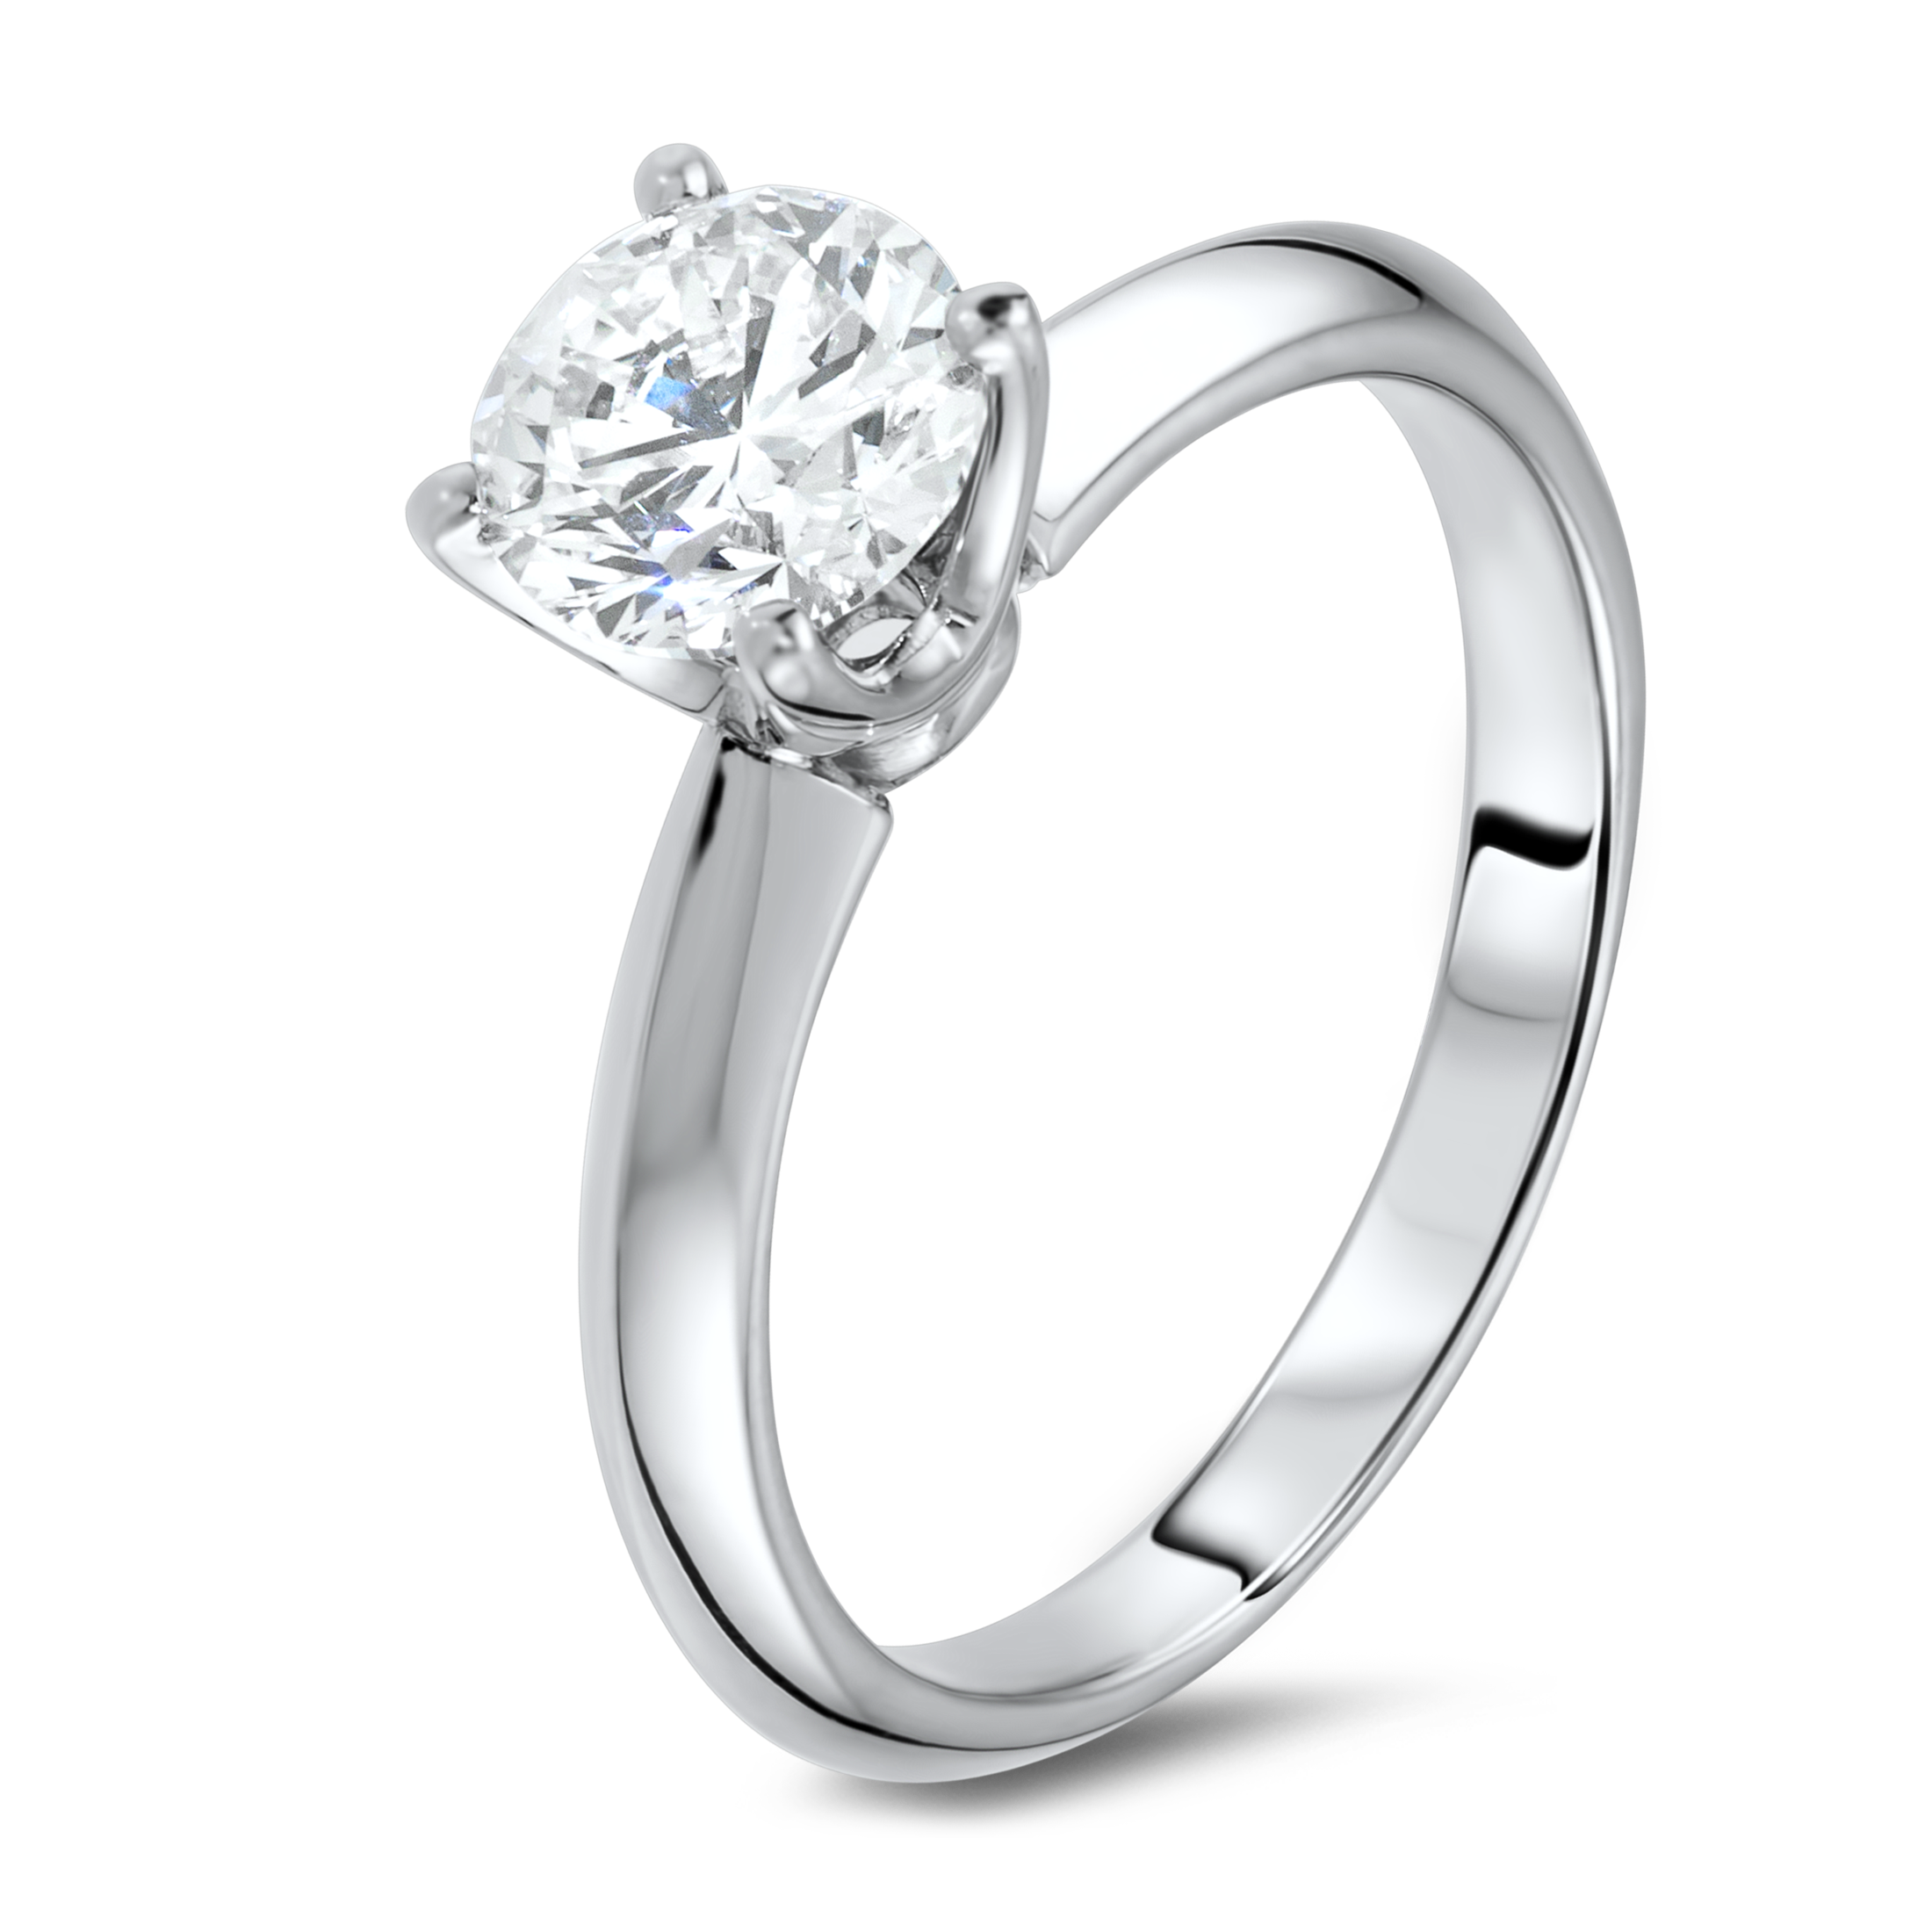 Diamond ring in 18k white gold.